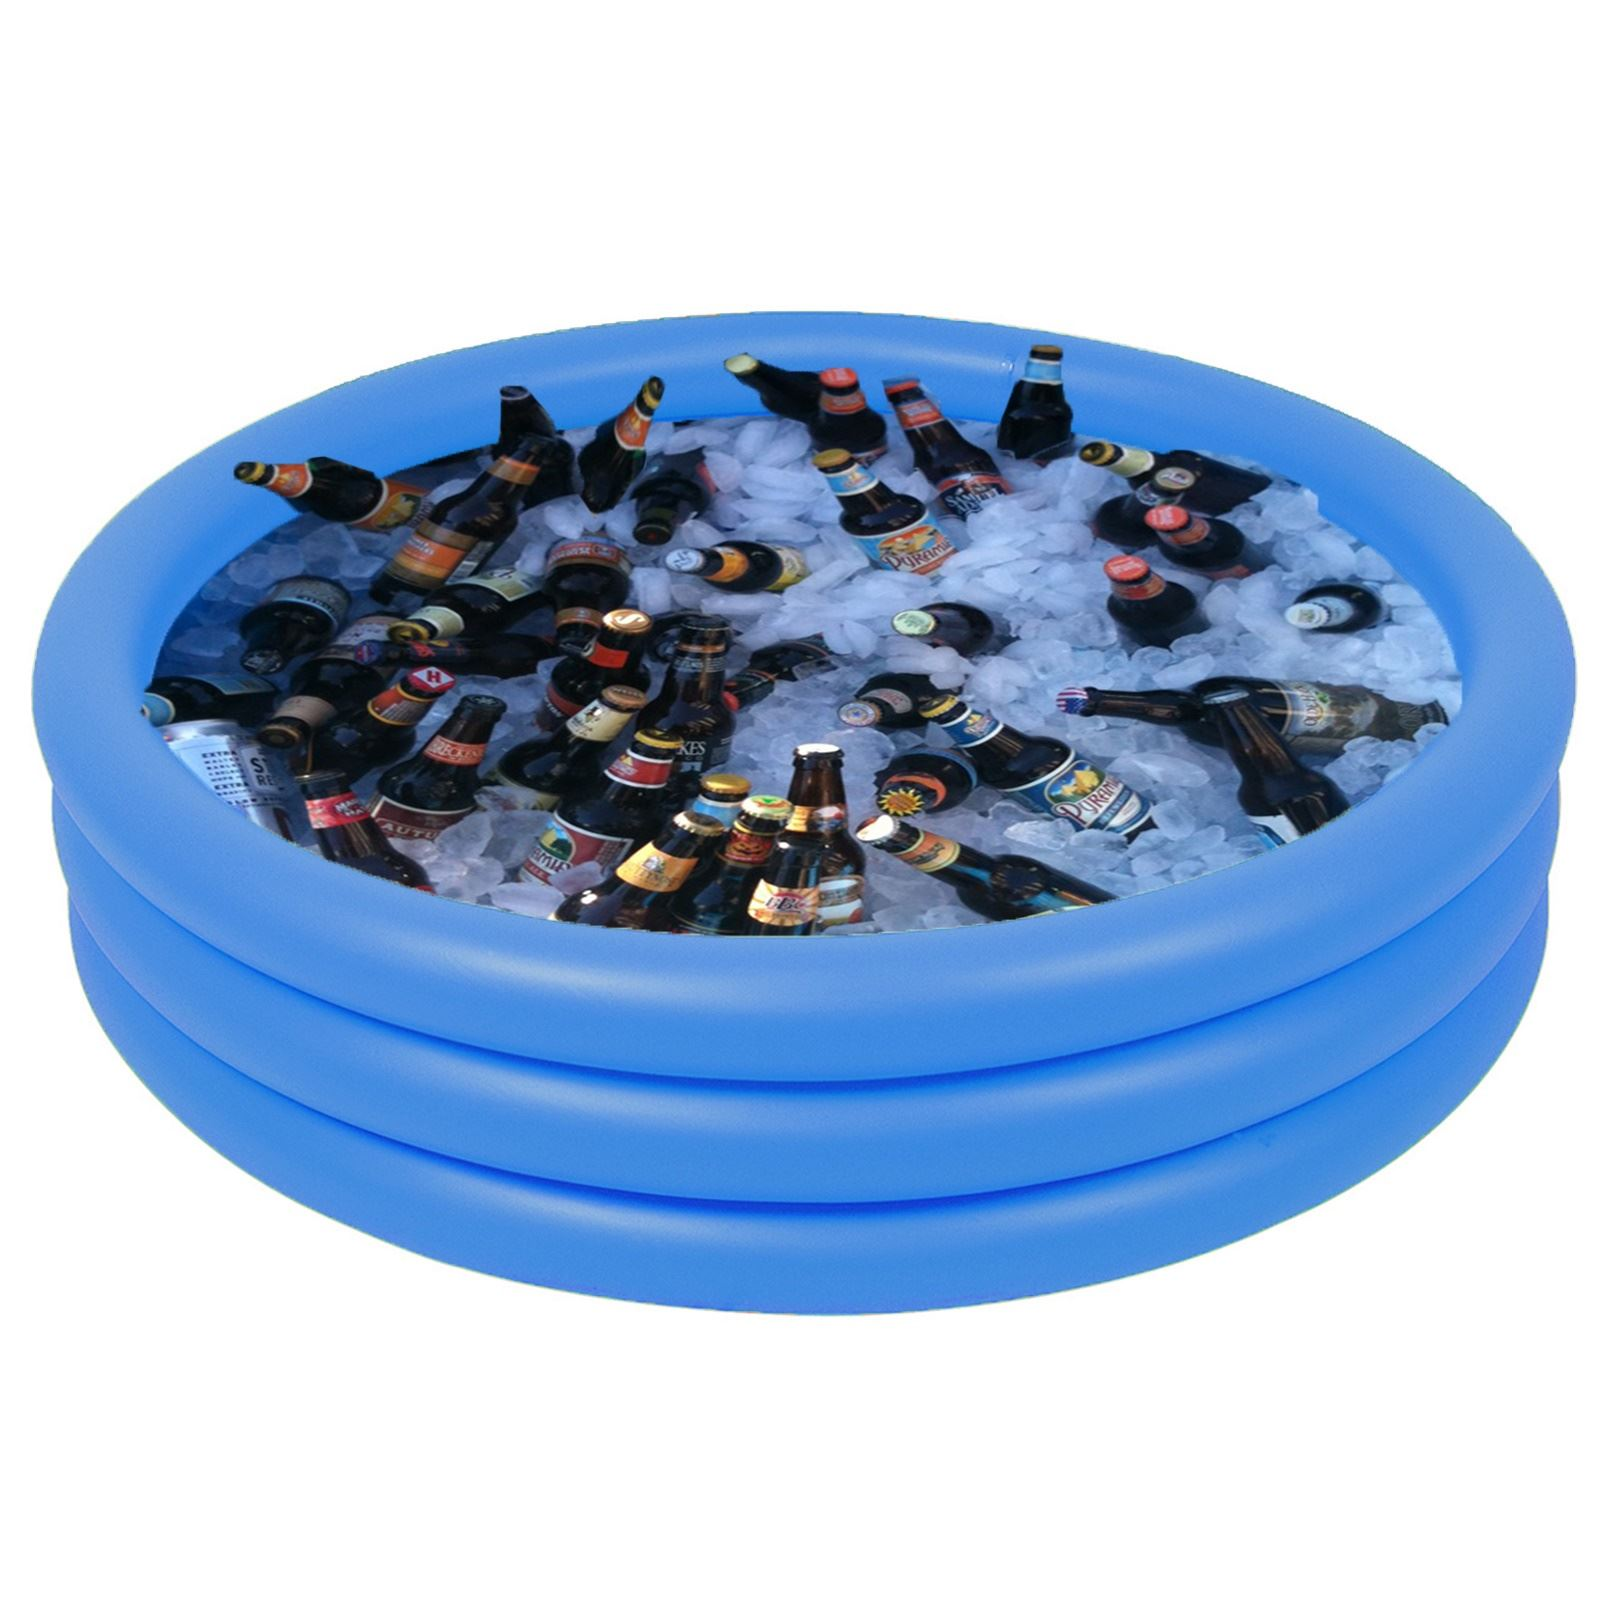 Paddling pool drinks beer cooler pool party festival for Paddling pools deals